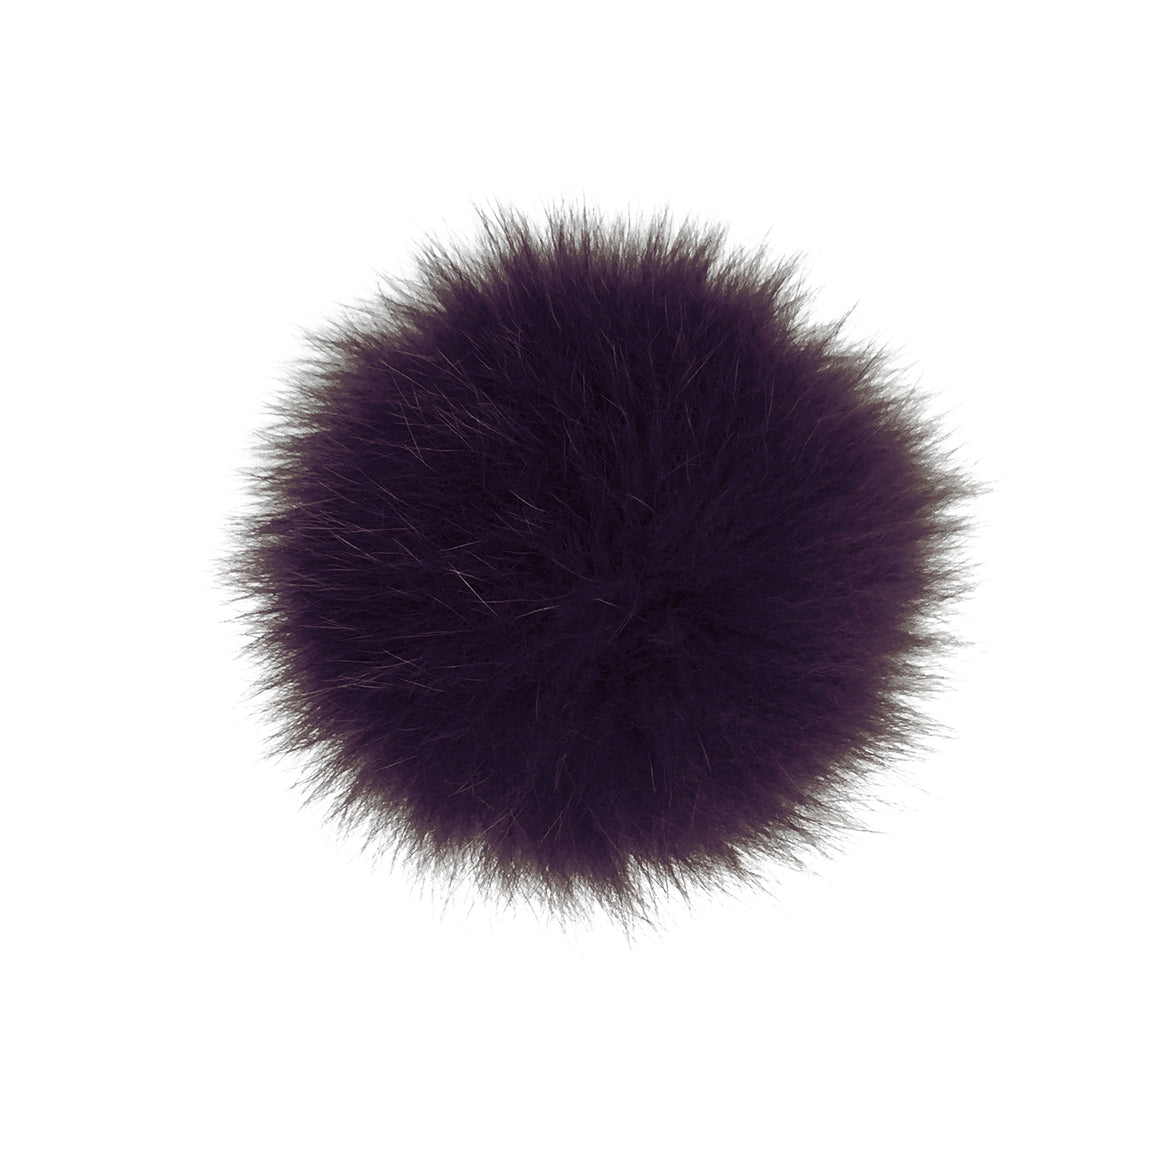 Fundamental Pom Pom Hat Toque | Burgundy Alpaca | Fur Pom Pom